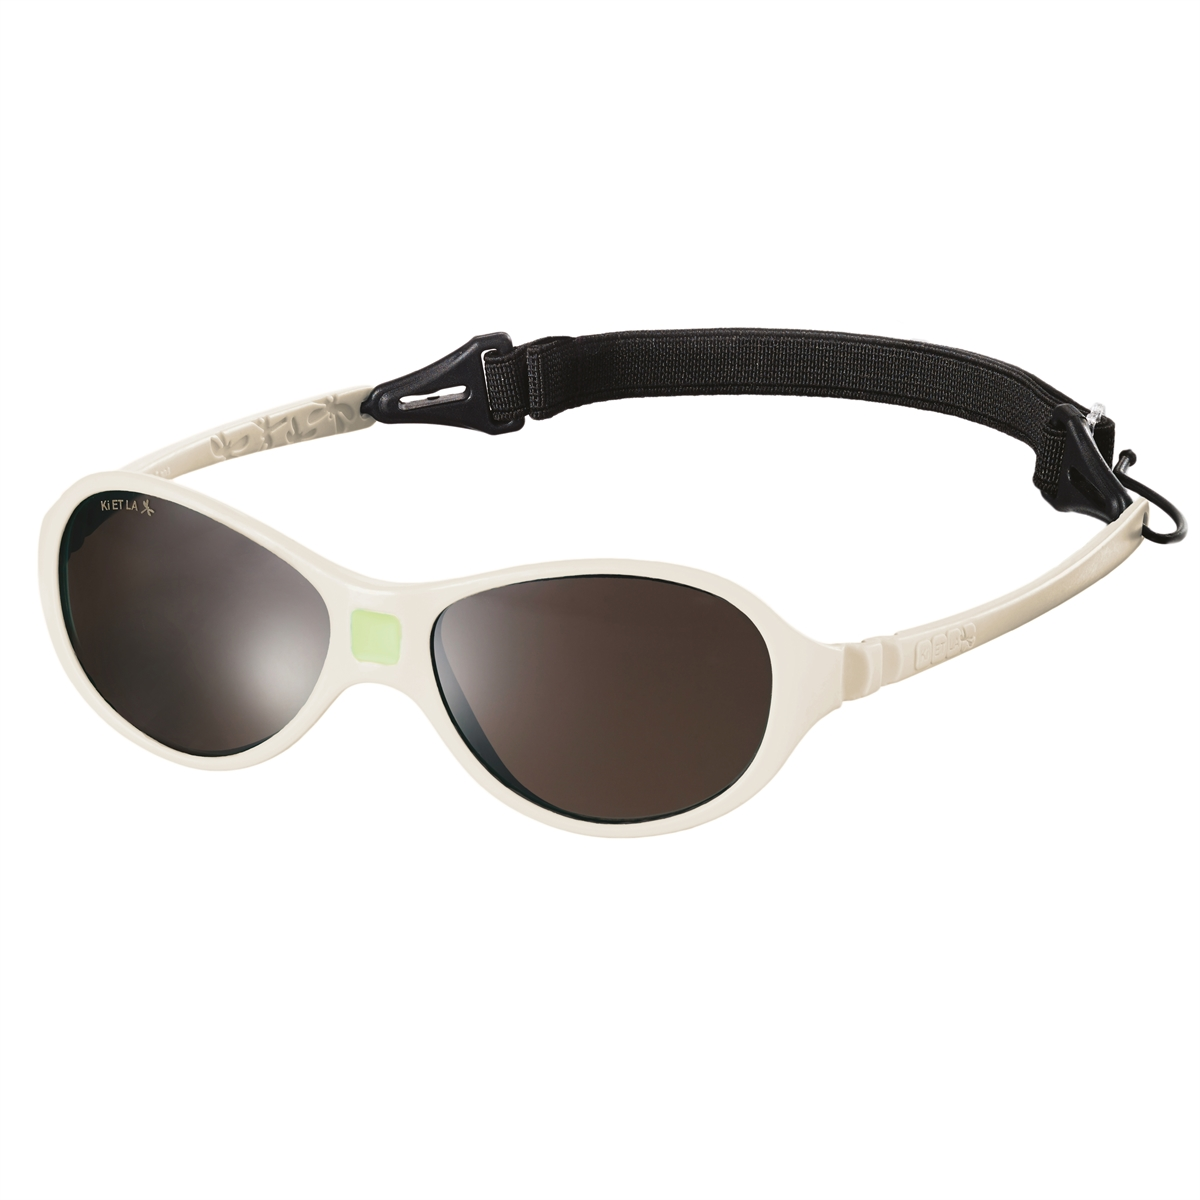 Mycey Sunglasses Unbreakable Child 12-30 Months As Mass Cream